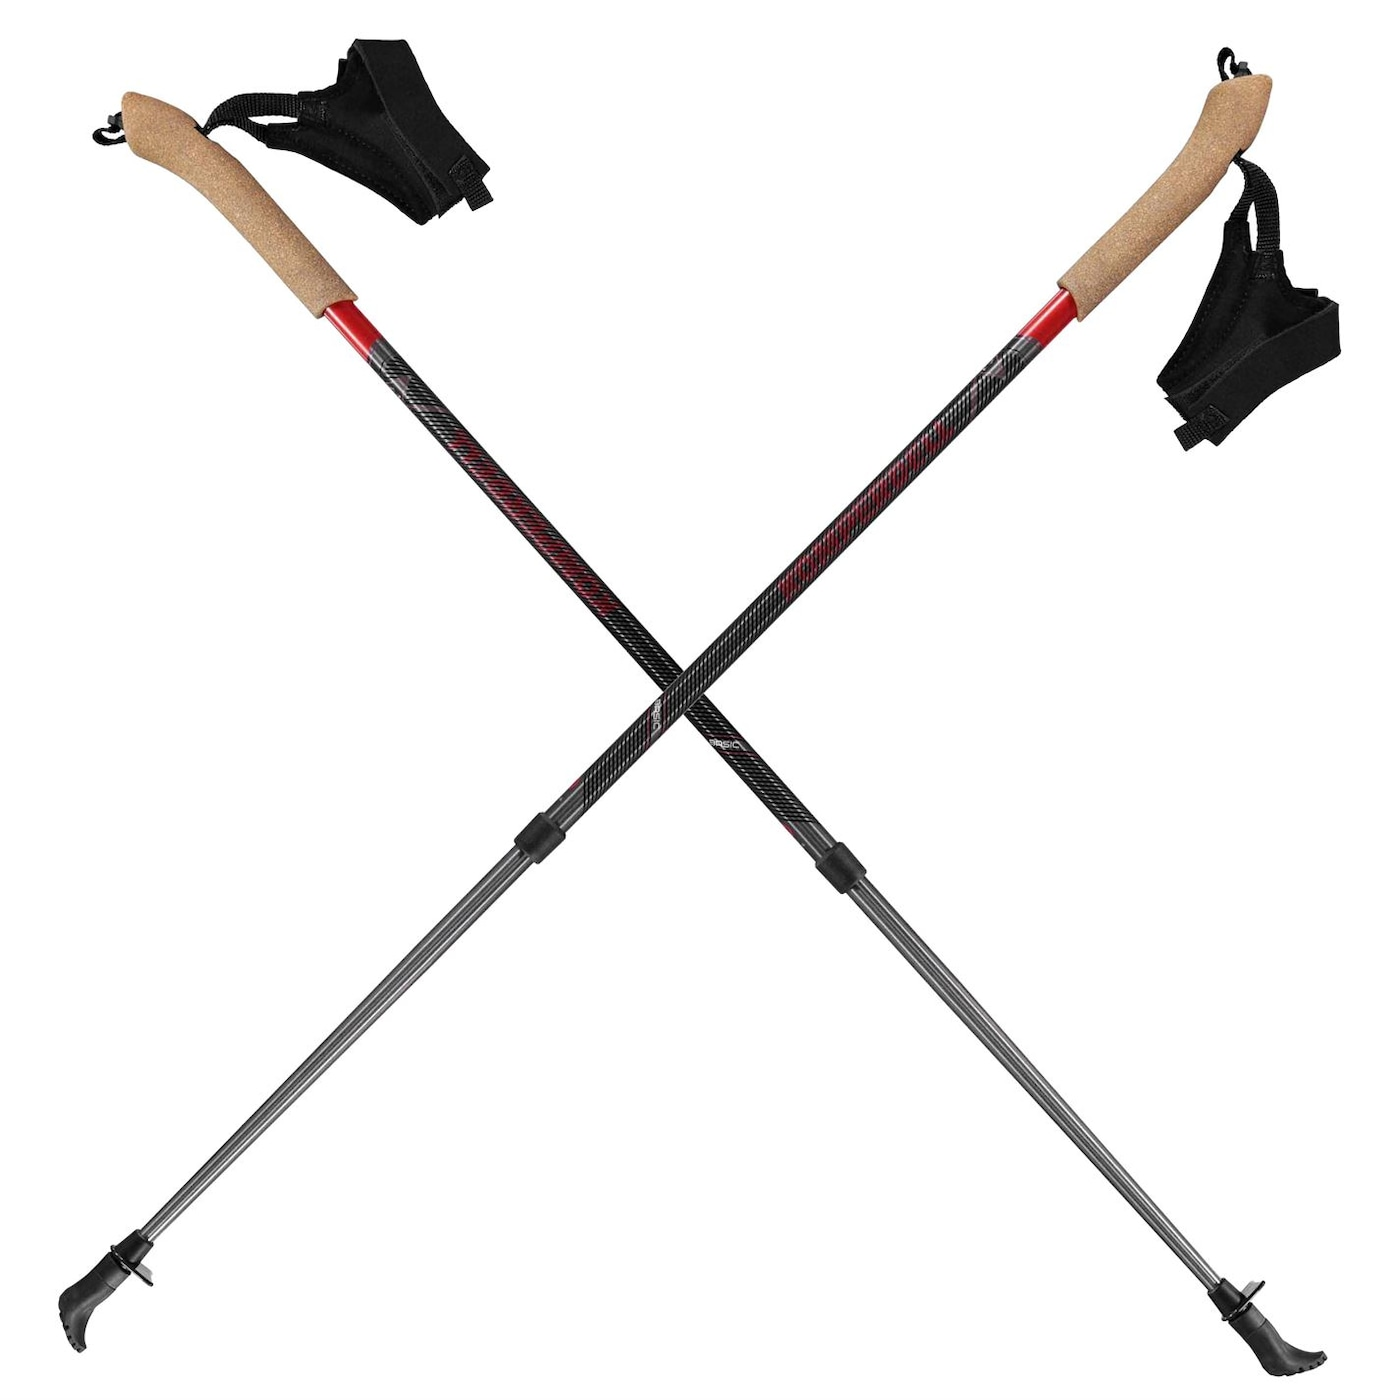 Komperdell Vario Walking Poles